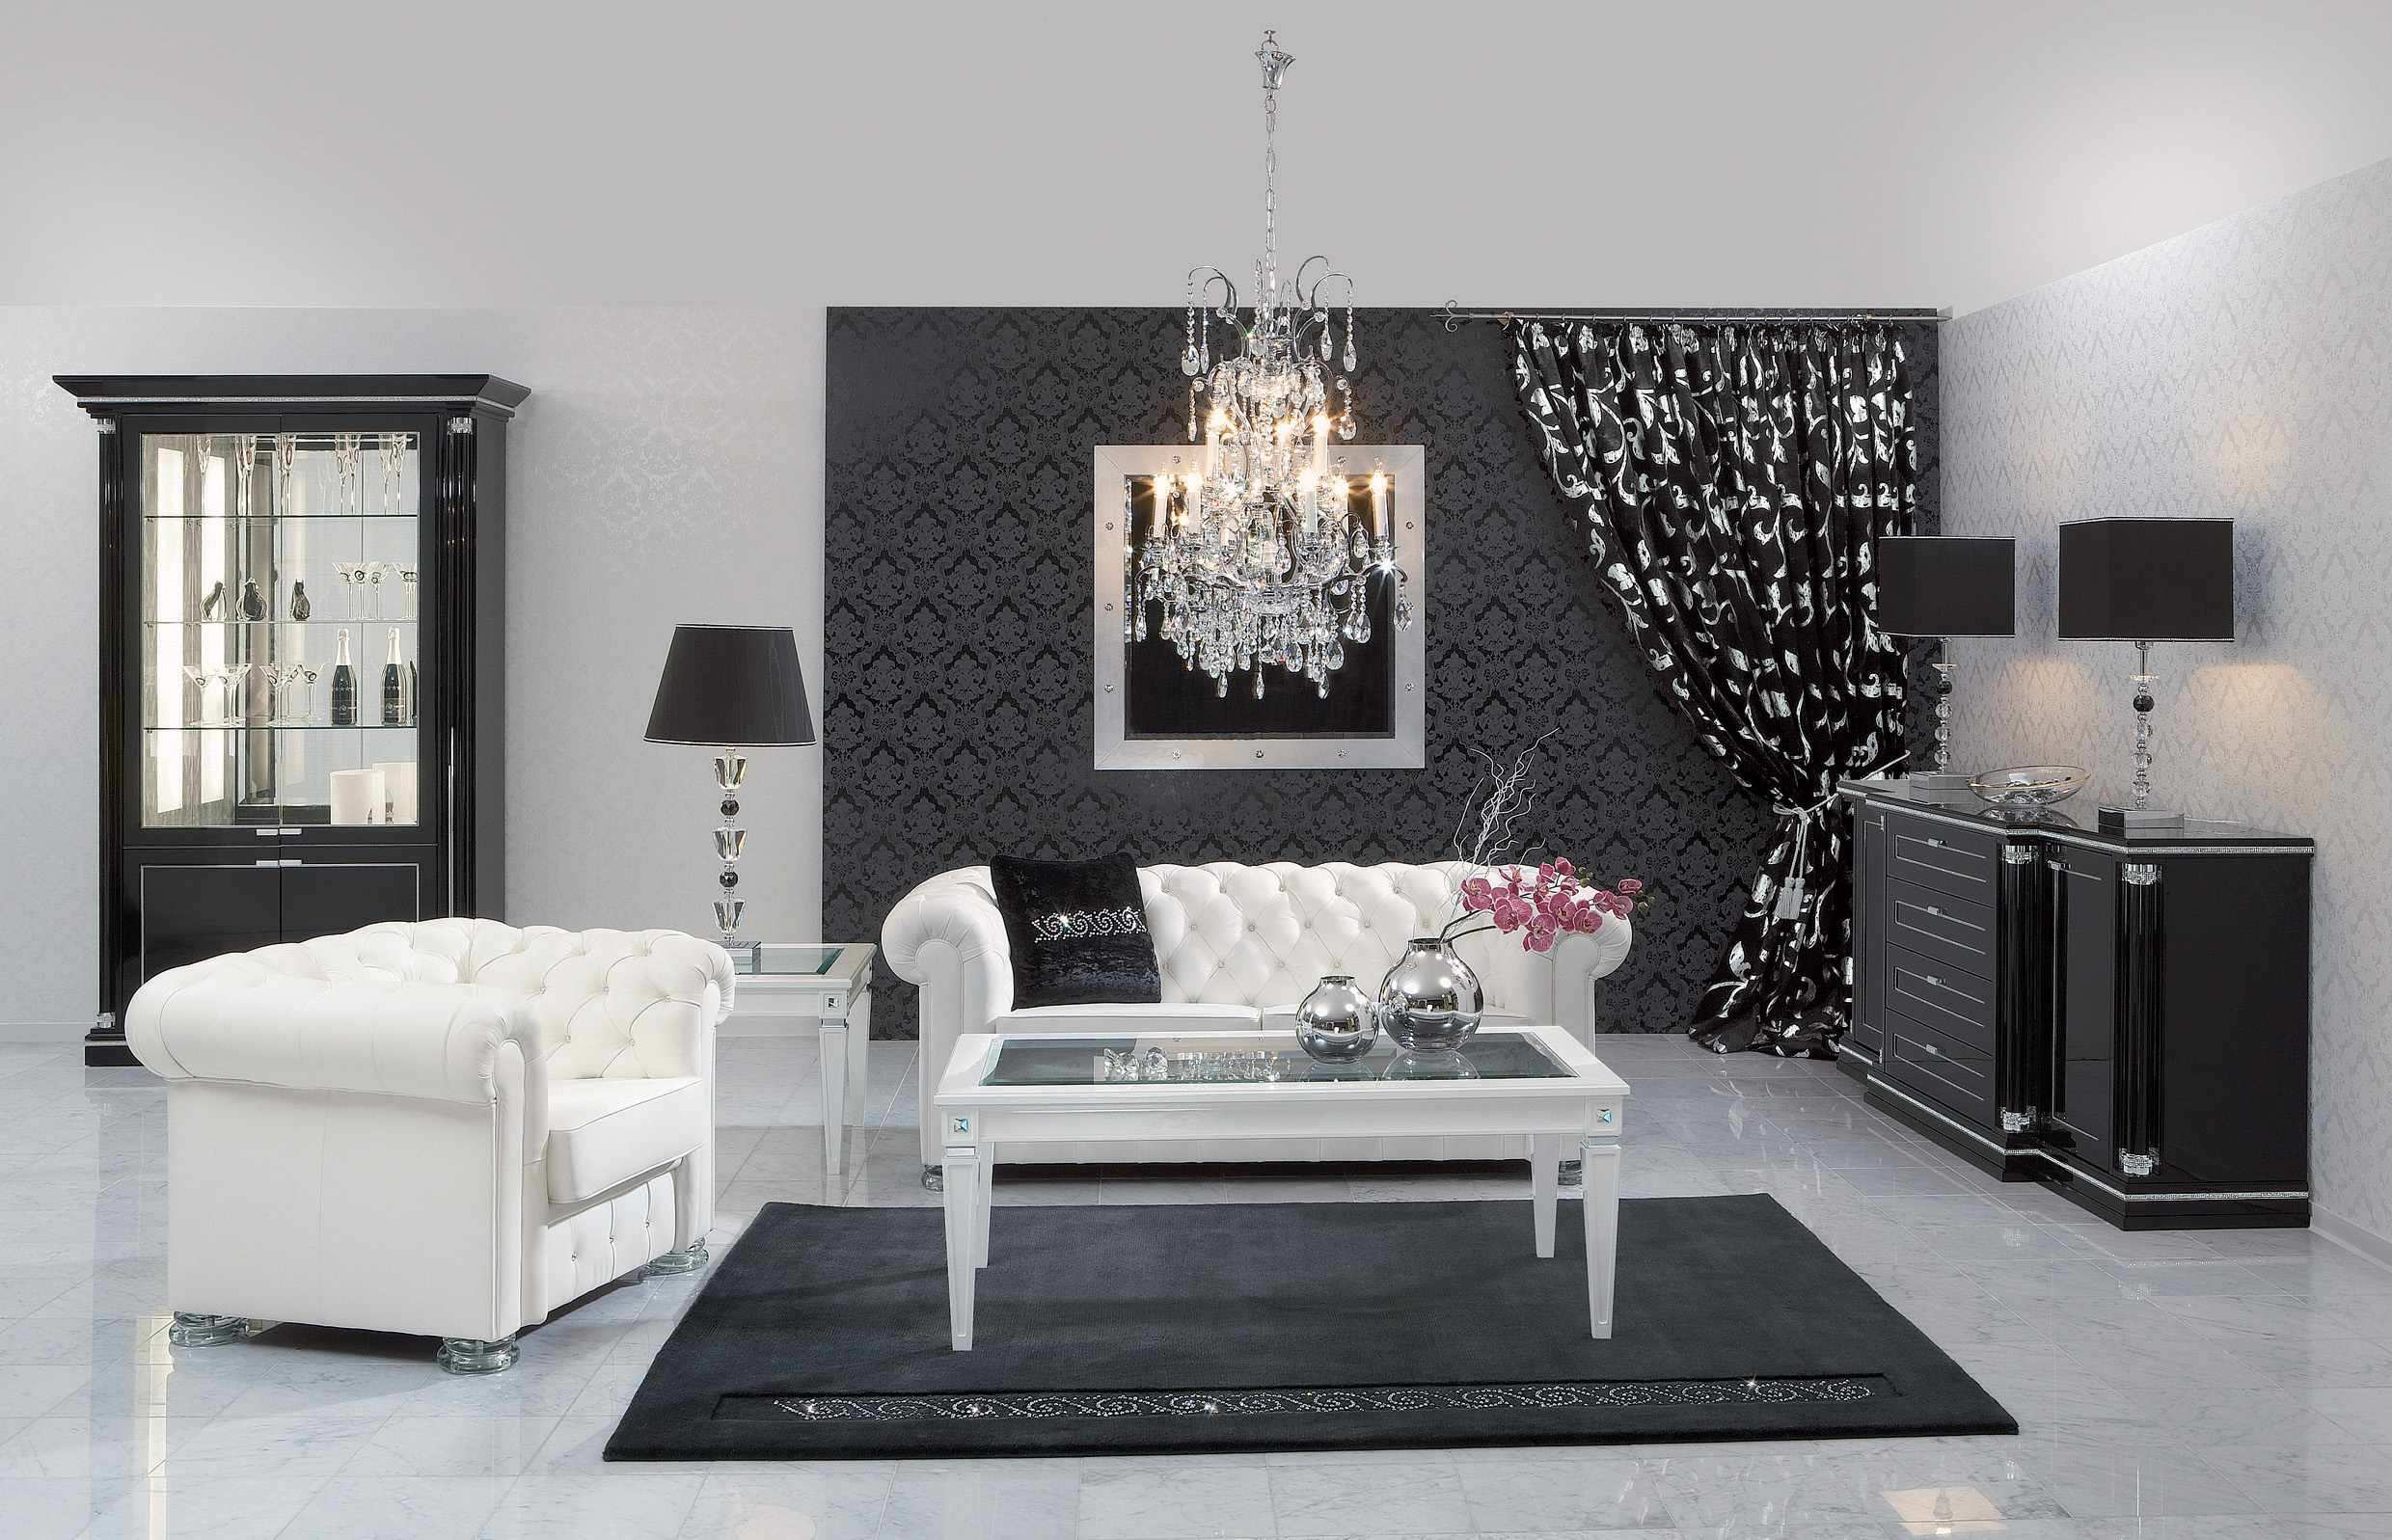 modern furniture design for living room. White Sofas Black Rug Pillows Lamps Cabinet Buffet Chandelier Modern Furniture Design For Living Room